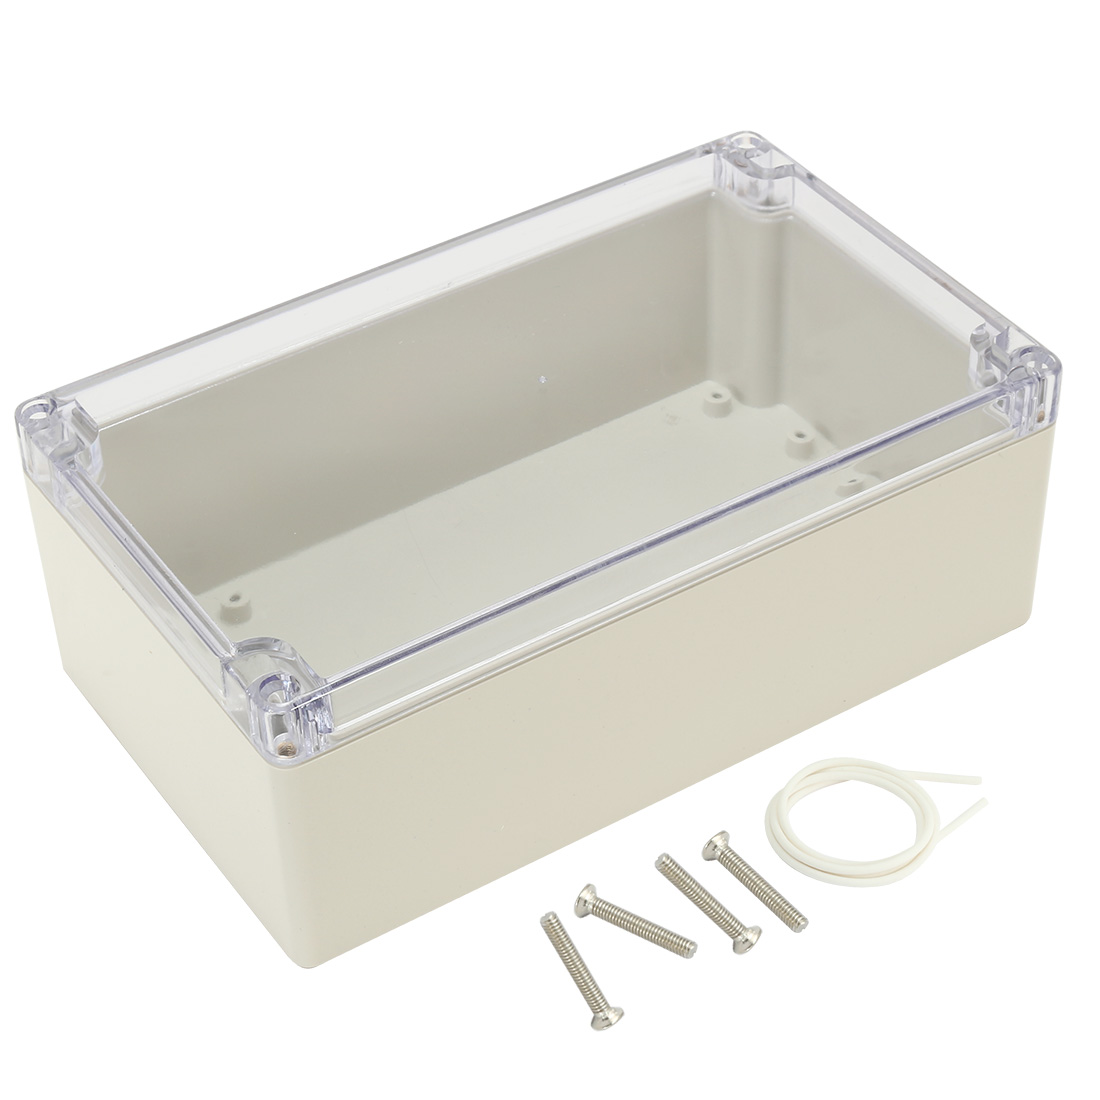 """7.9""""x4.7""""x2.9""""(200mmx120mmx75mm) ABS Junction Box Universal Project Enclosure w PC Transparent Cover"""